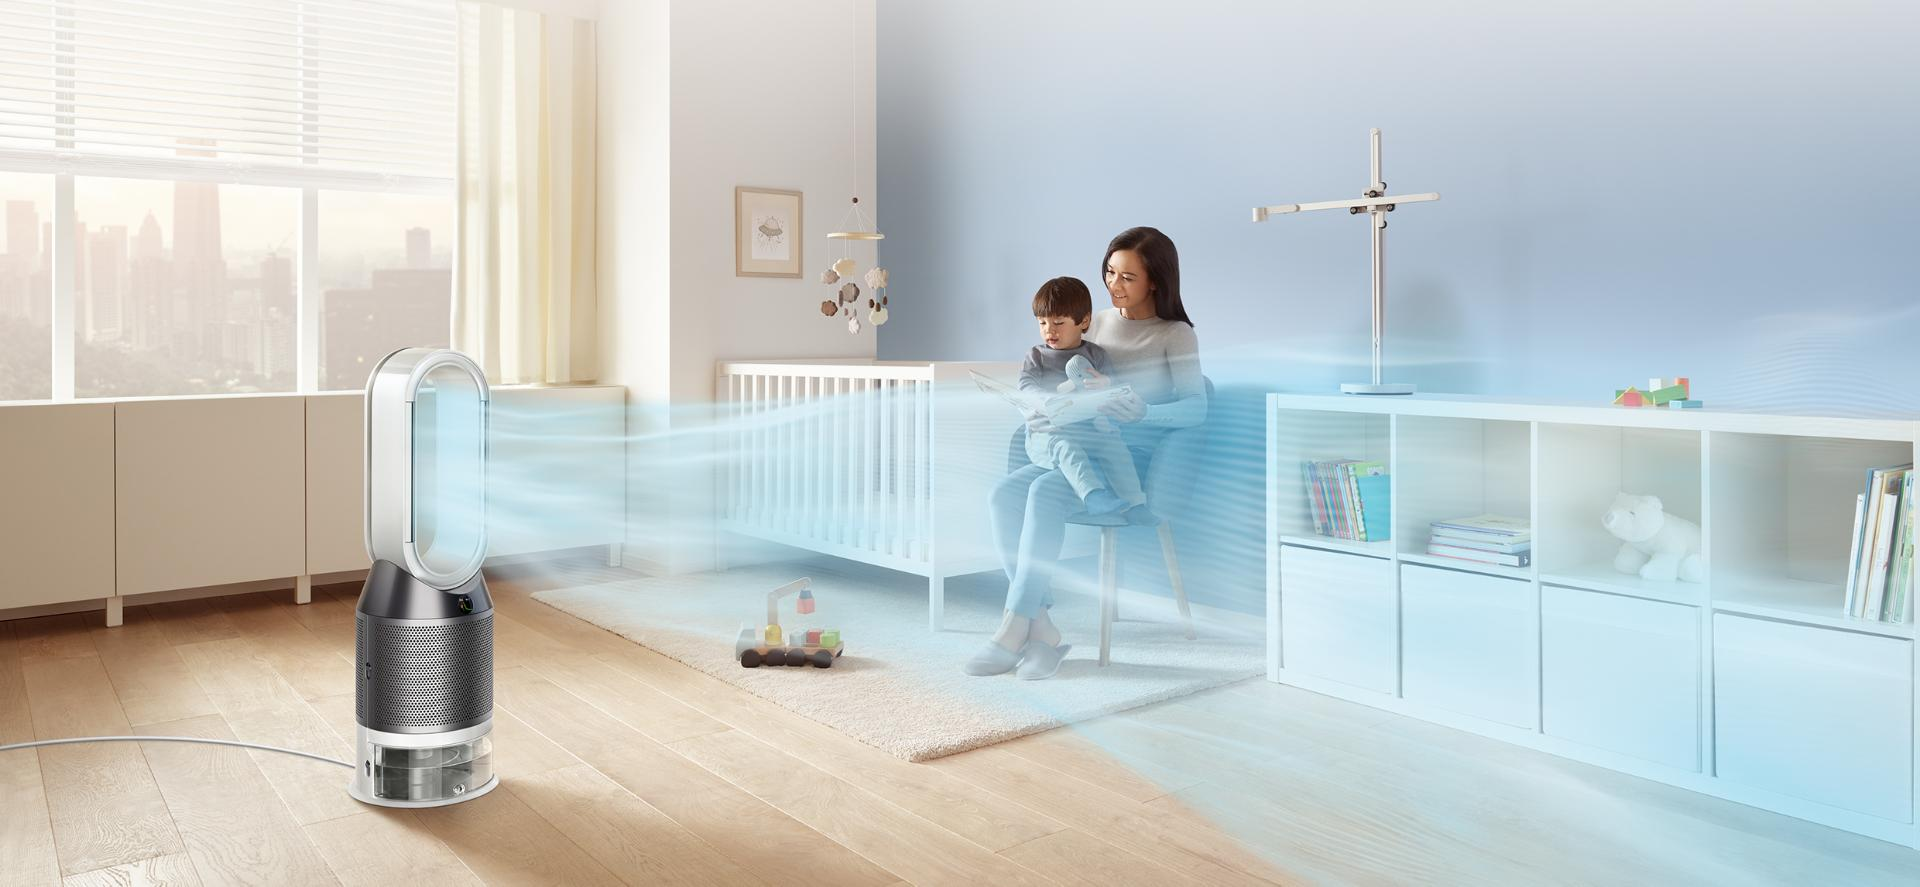 A woman reads to her child while the Dyson purifier humidifier fan projects a stream of air through his bedroom